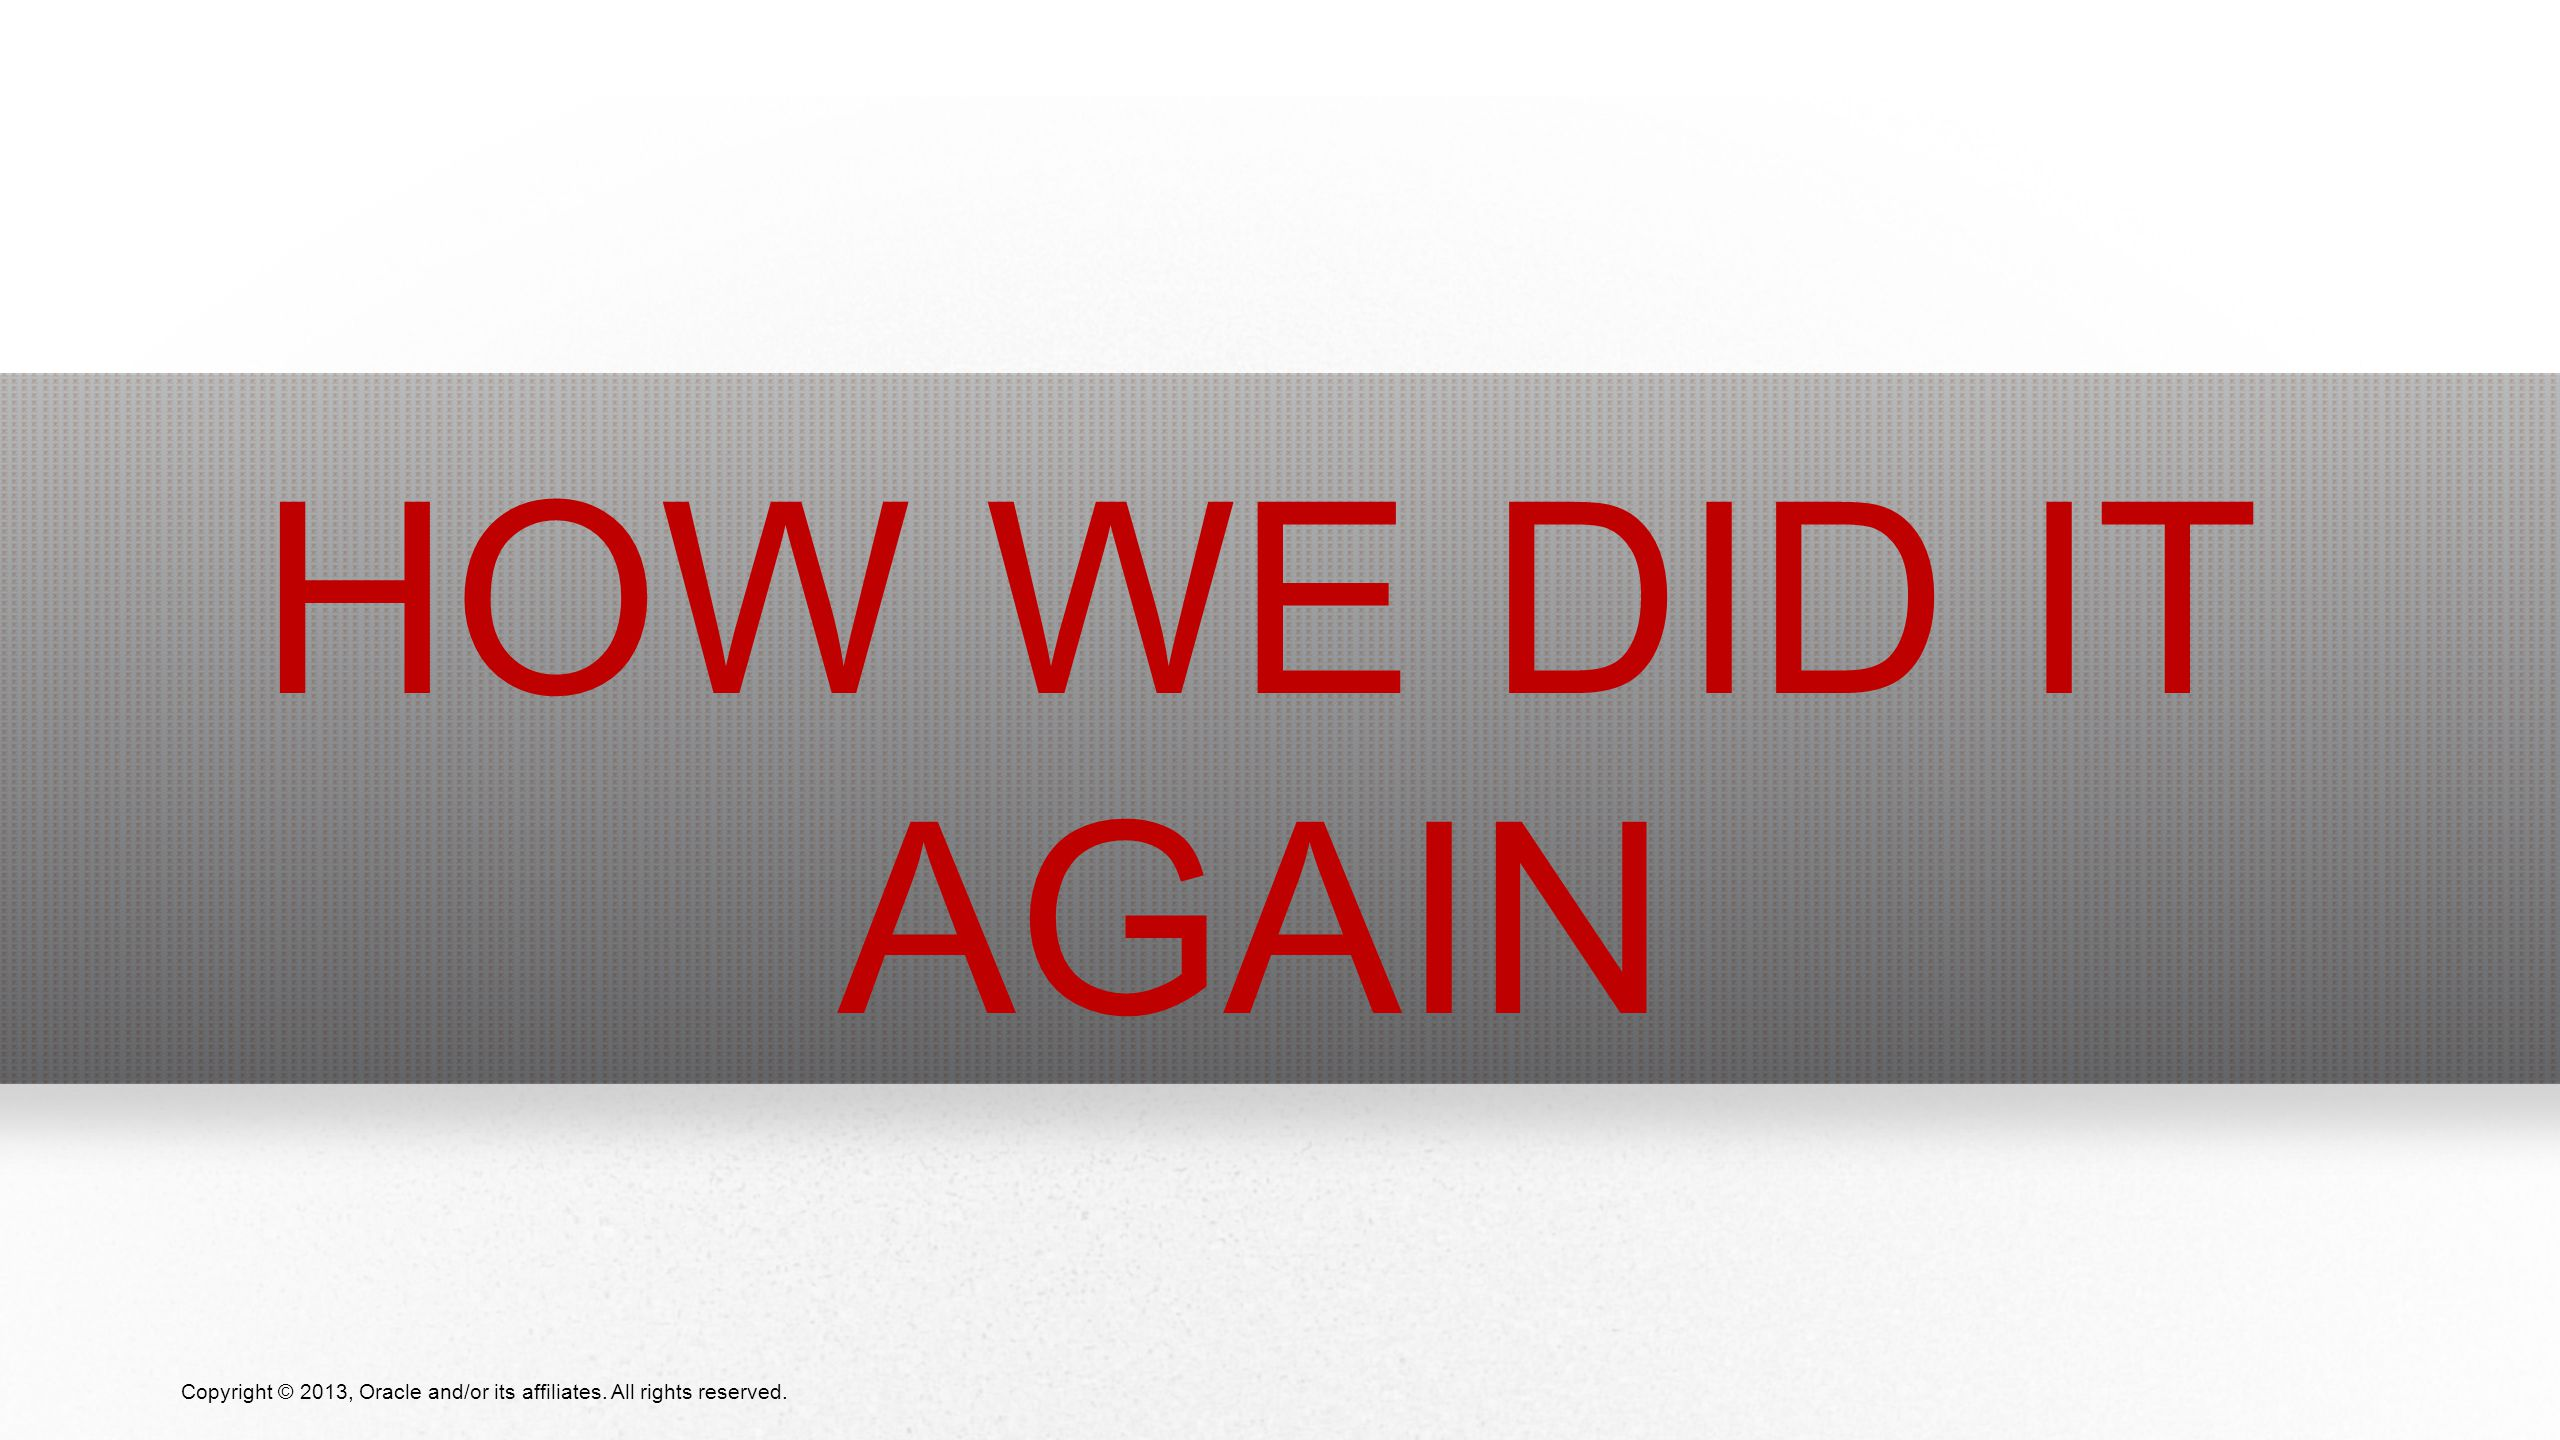 15 Copyright © 2013, Oracle and/or its affiliates. All rights reserved. HOW WE DID IT AGAIN